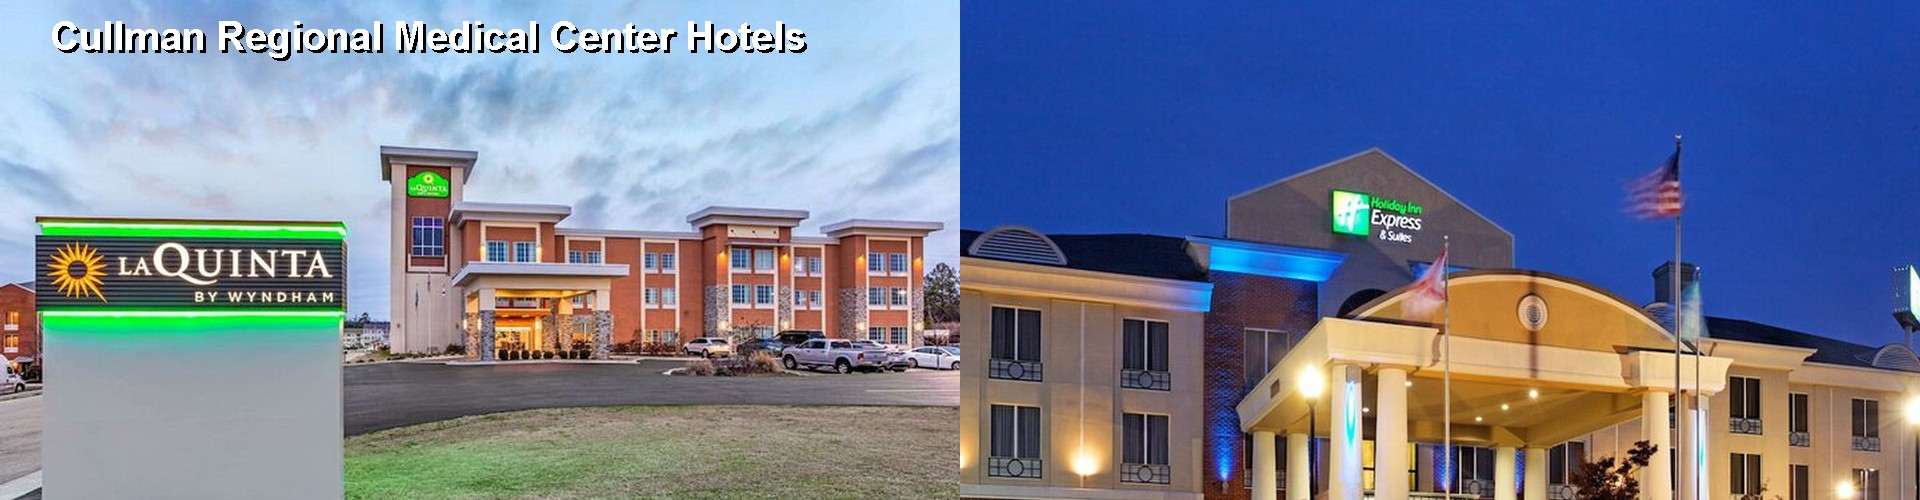 5 Best Hotels Near Cullman Regional Medical Center